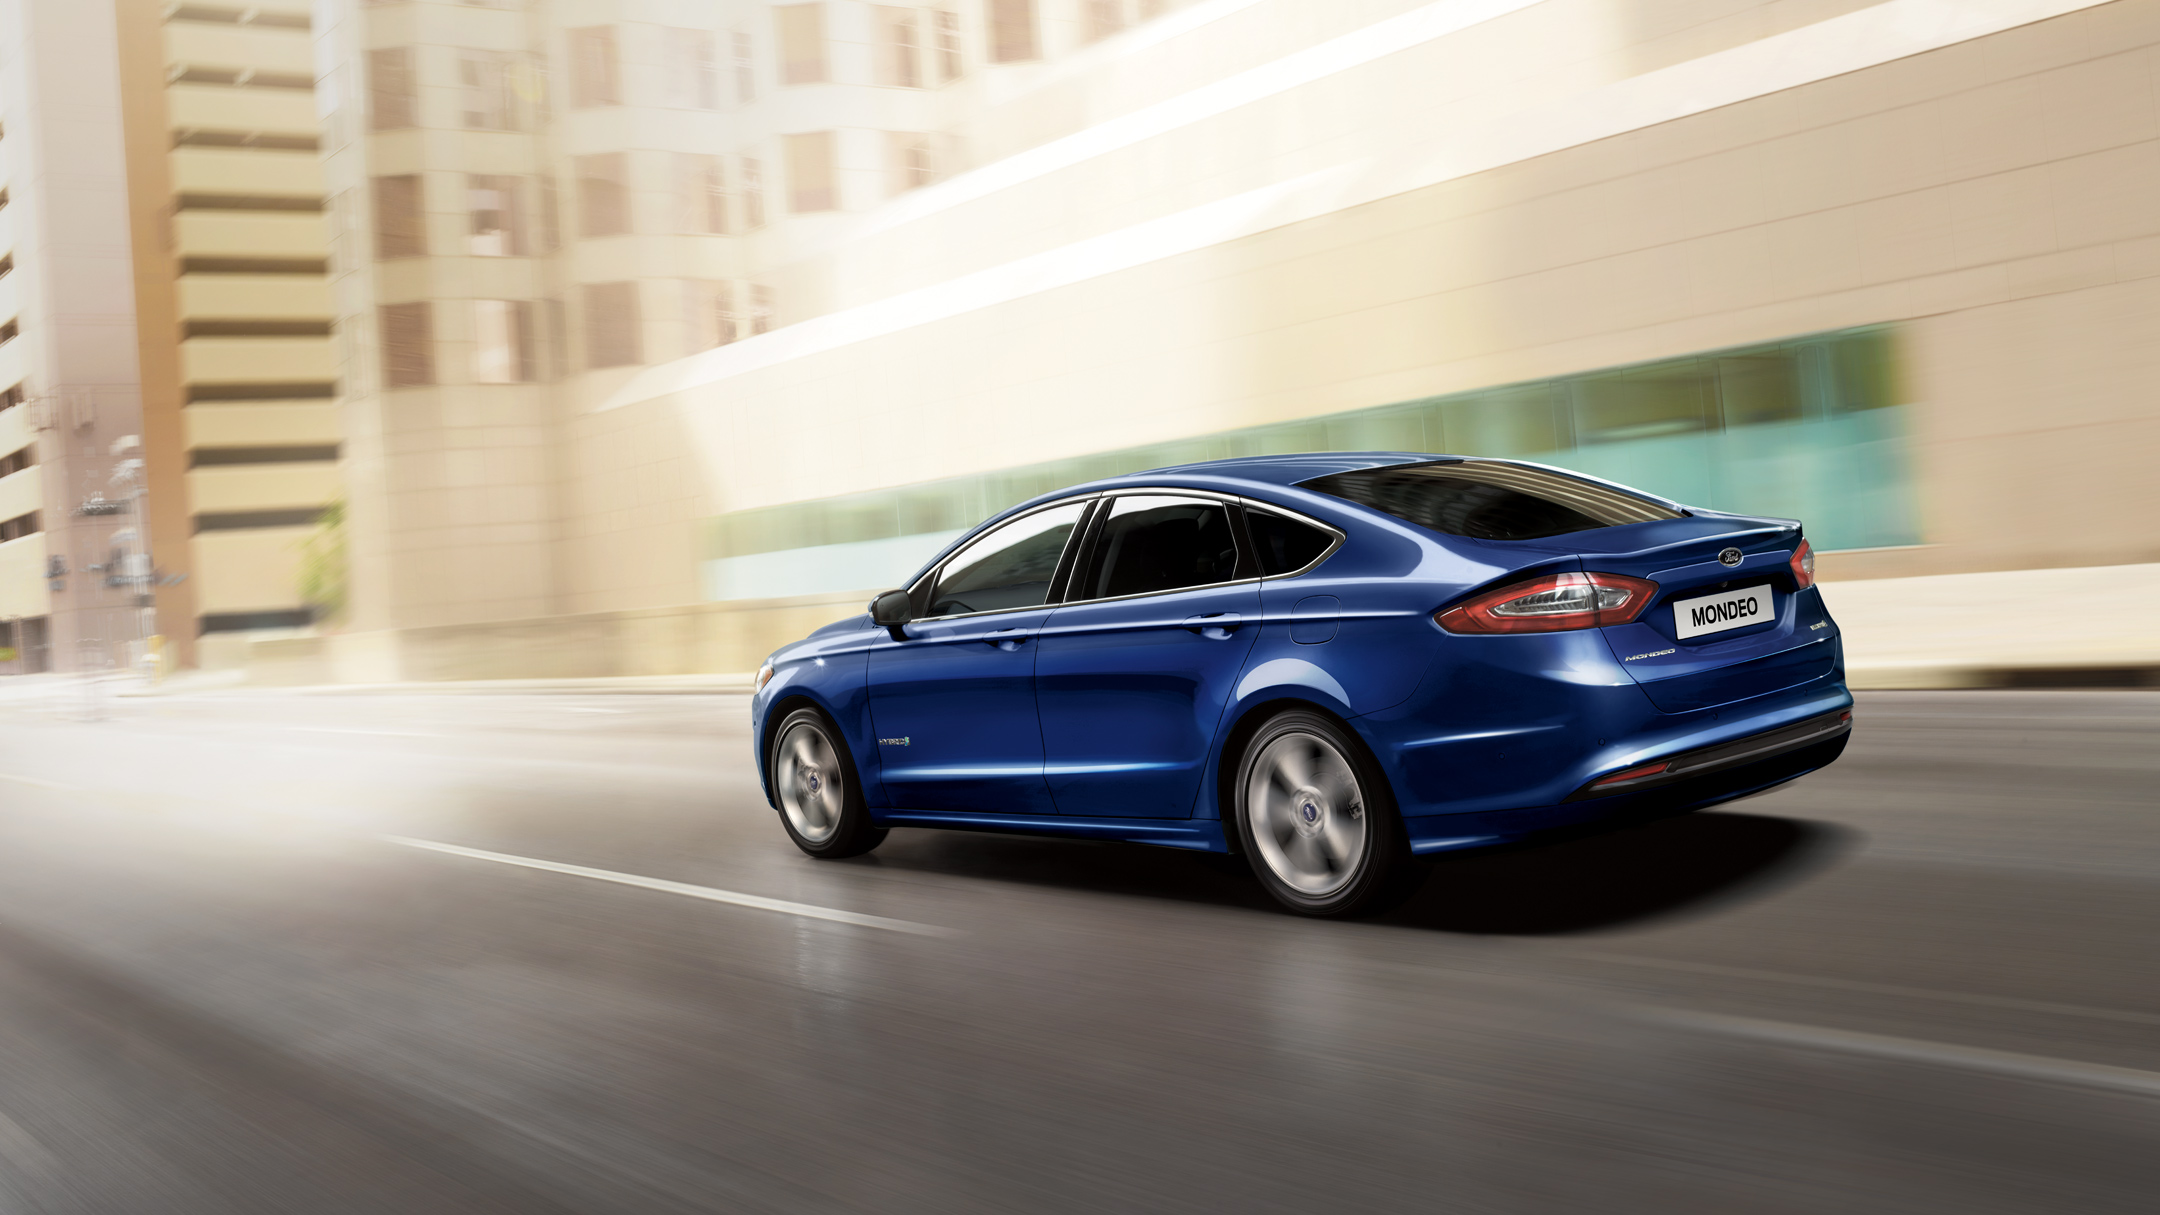 2020 ford mondeo - ford's upcoming cars in australia blue